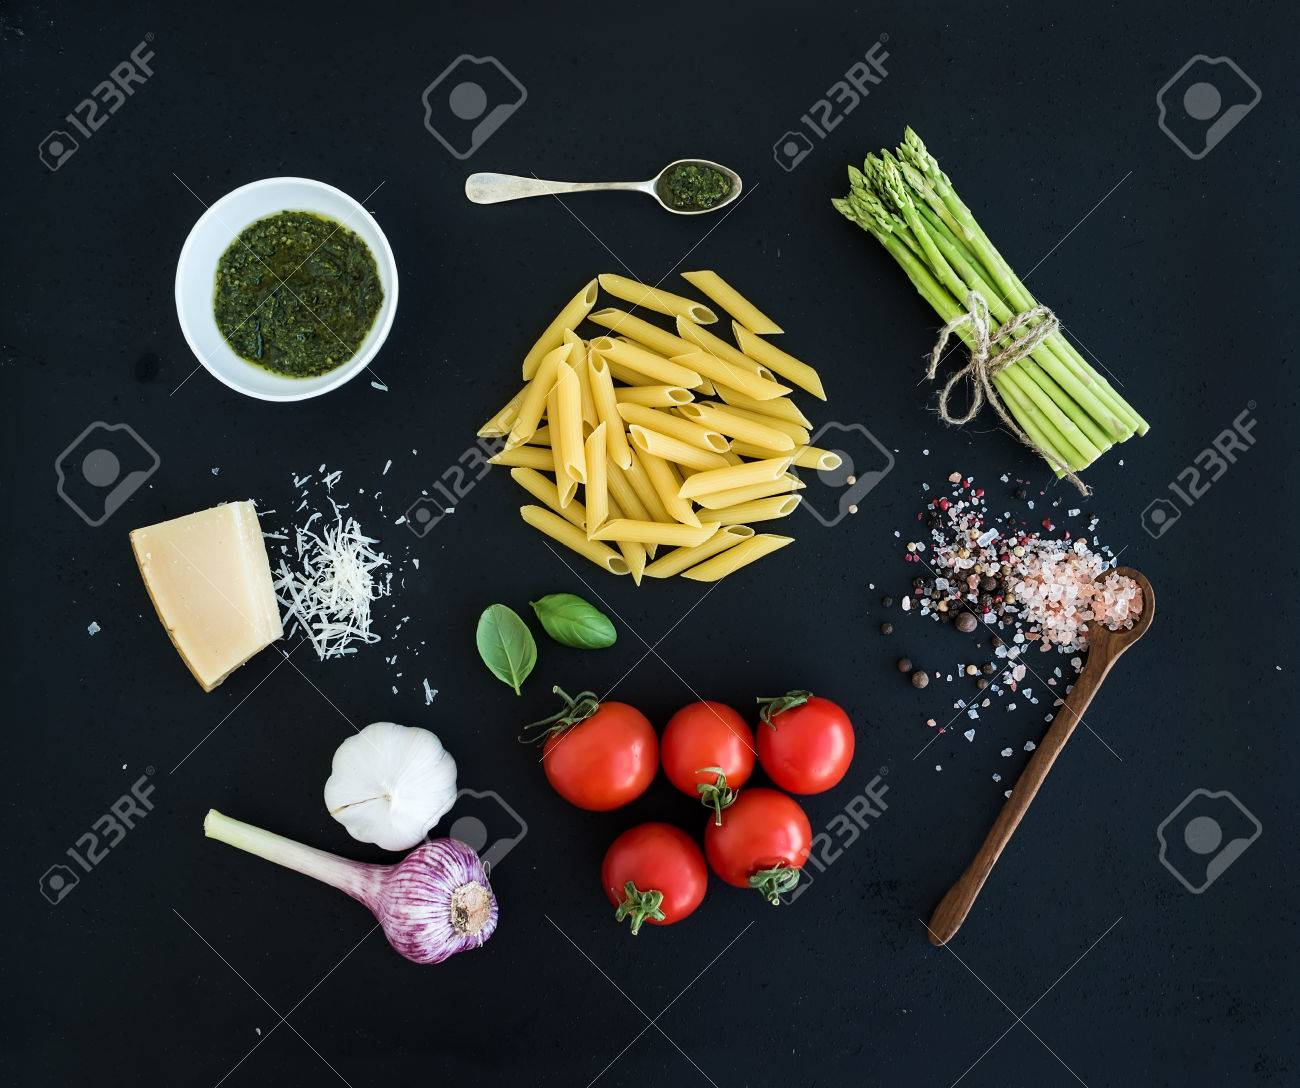 Ingredients for cooking pasta penne green asparagus basil ingredients for cooking pasta penne green asparagus basil pesto sauce garlic ccuart Image collections